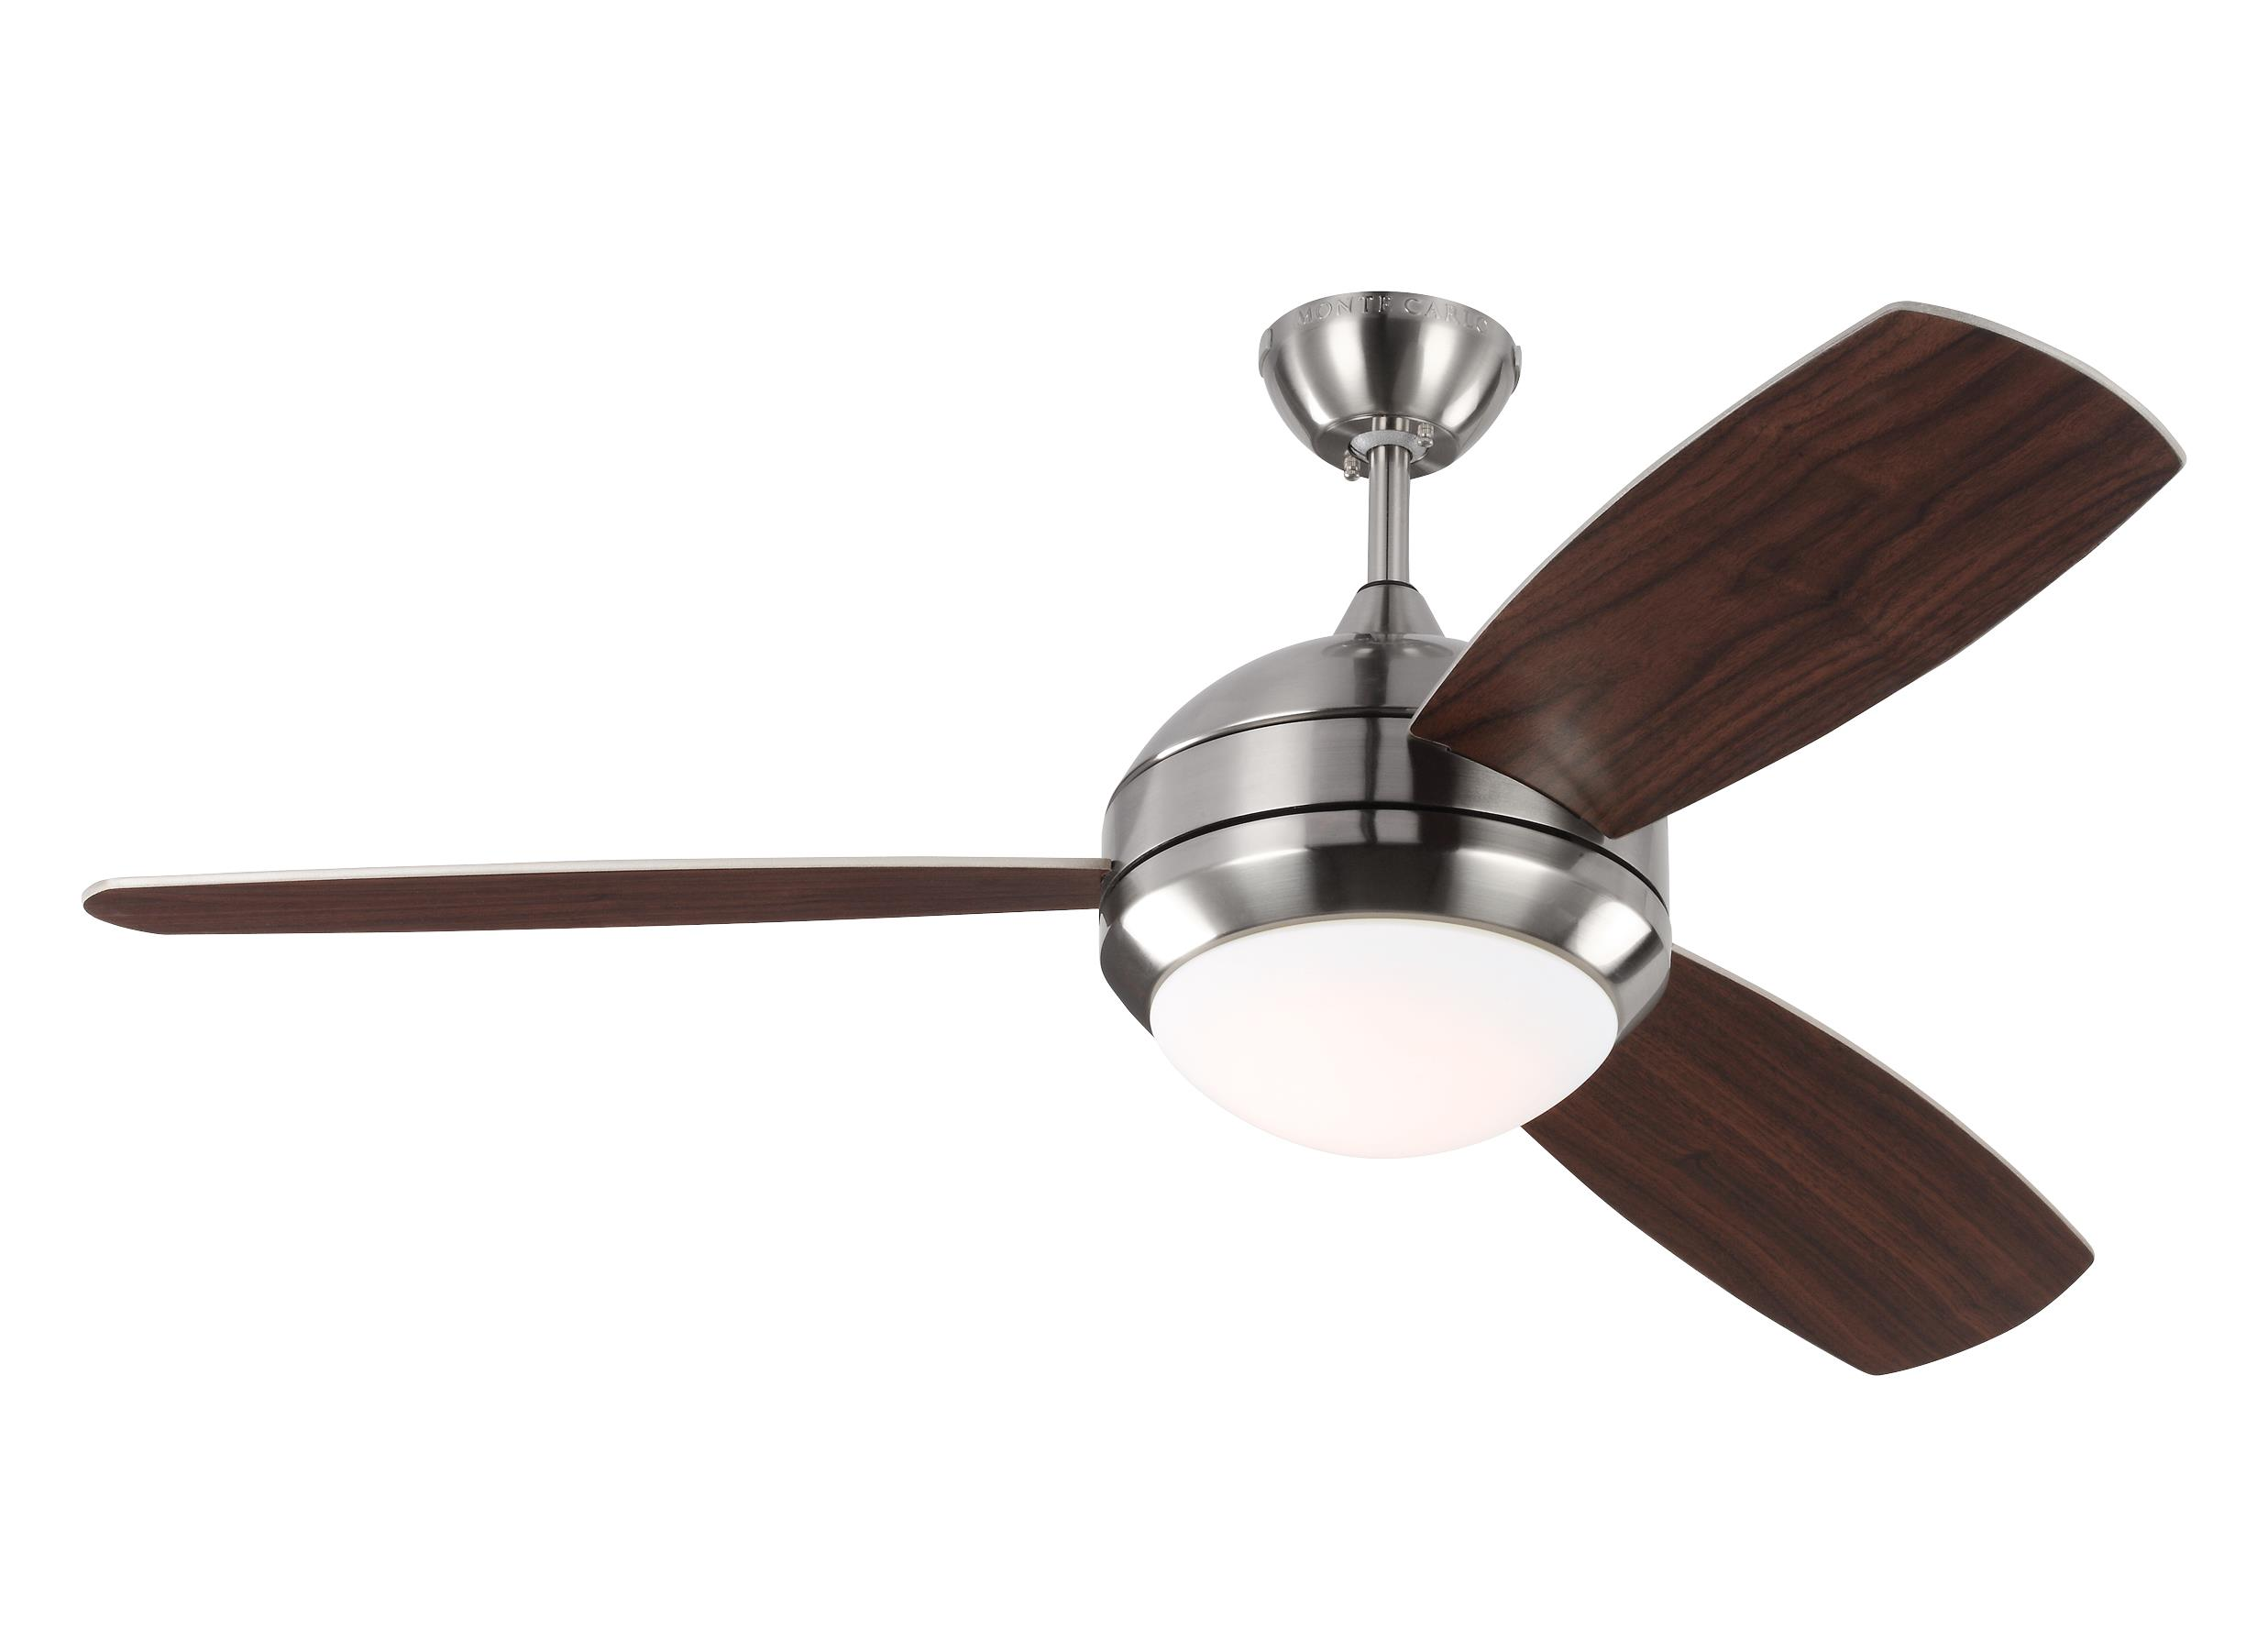 Ceiling Fan by the Monte Carlo Fan pany